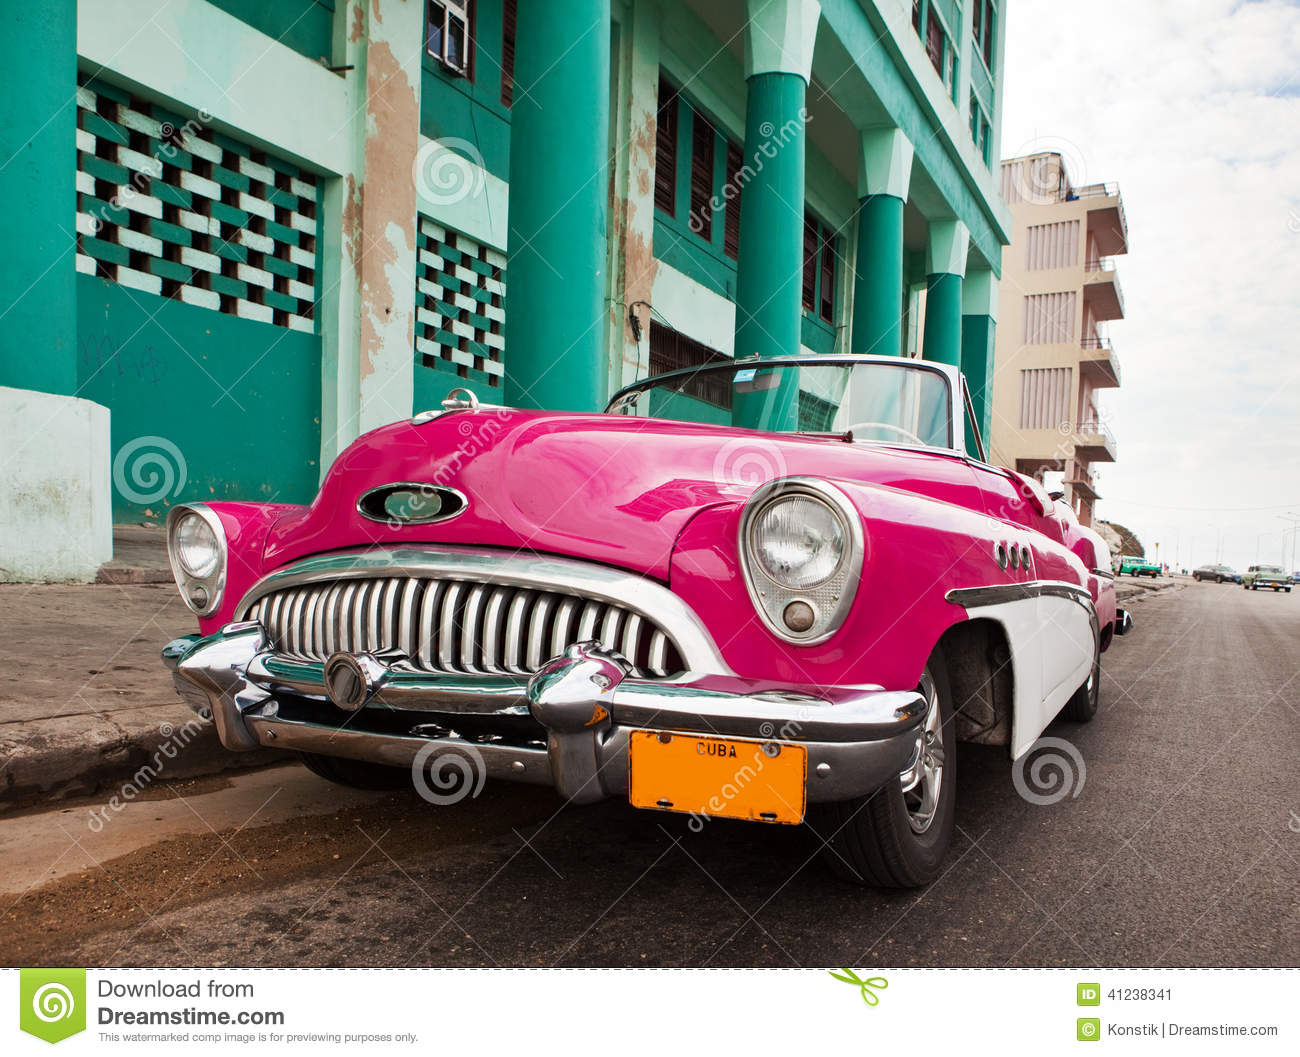 old american retro car 50th years of the last century an iconic sight in the city on the. Black Bedroom Furniture Sets. Home Design Ideas